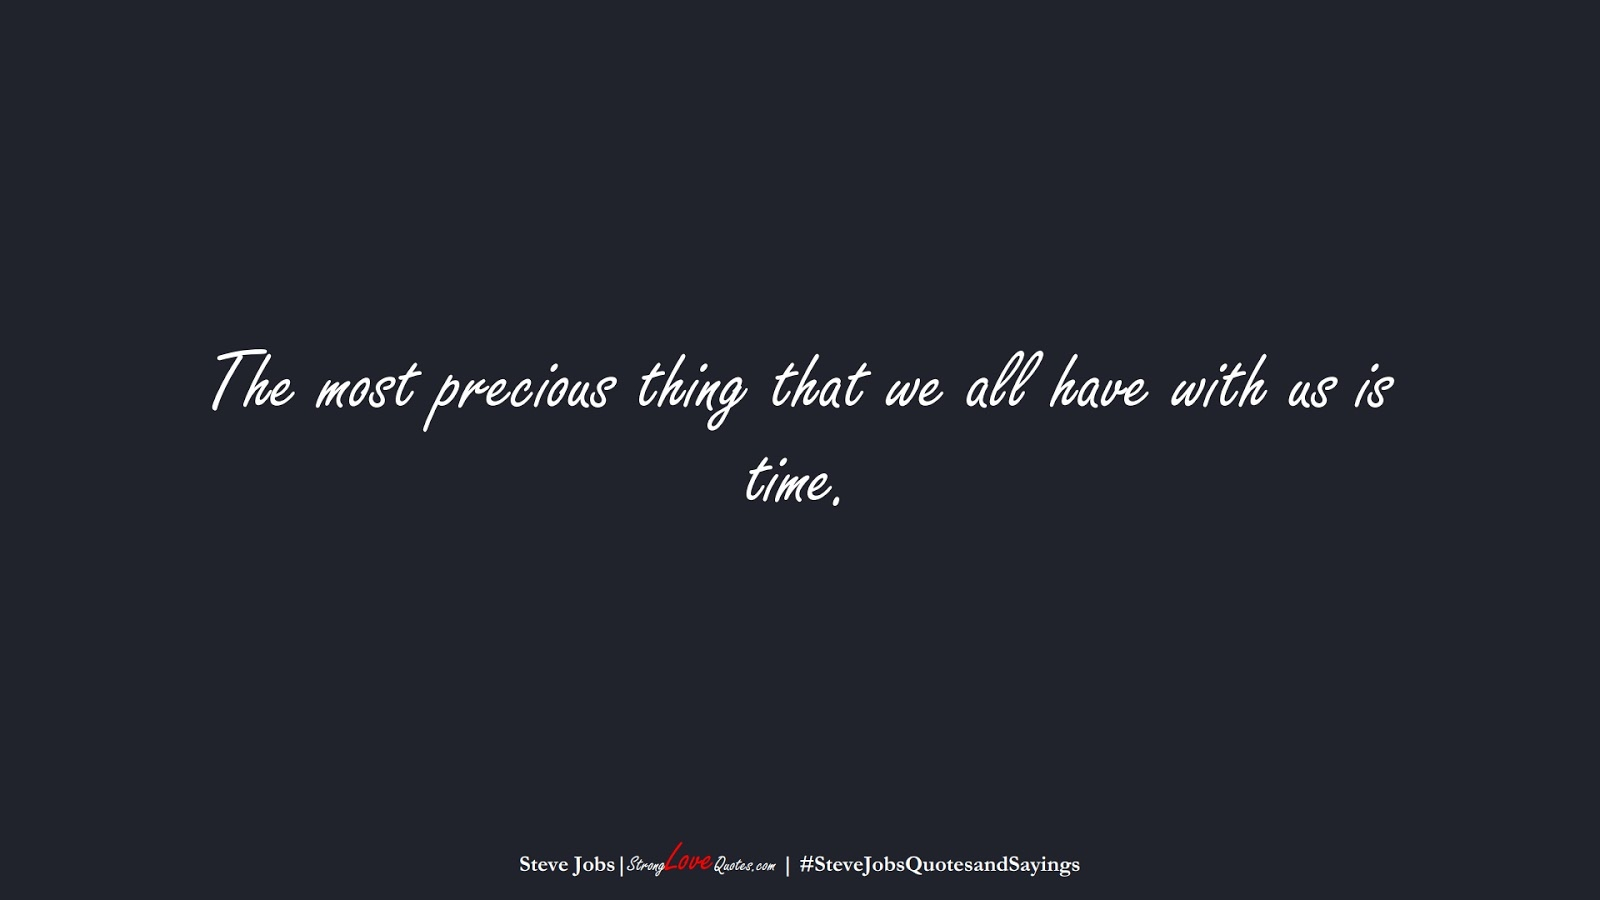 The most precious thing that we all have with us is time. (Steve Jobs);  #SteveJobsQuotesandSayings